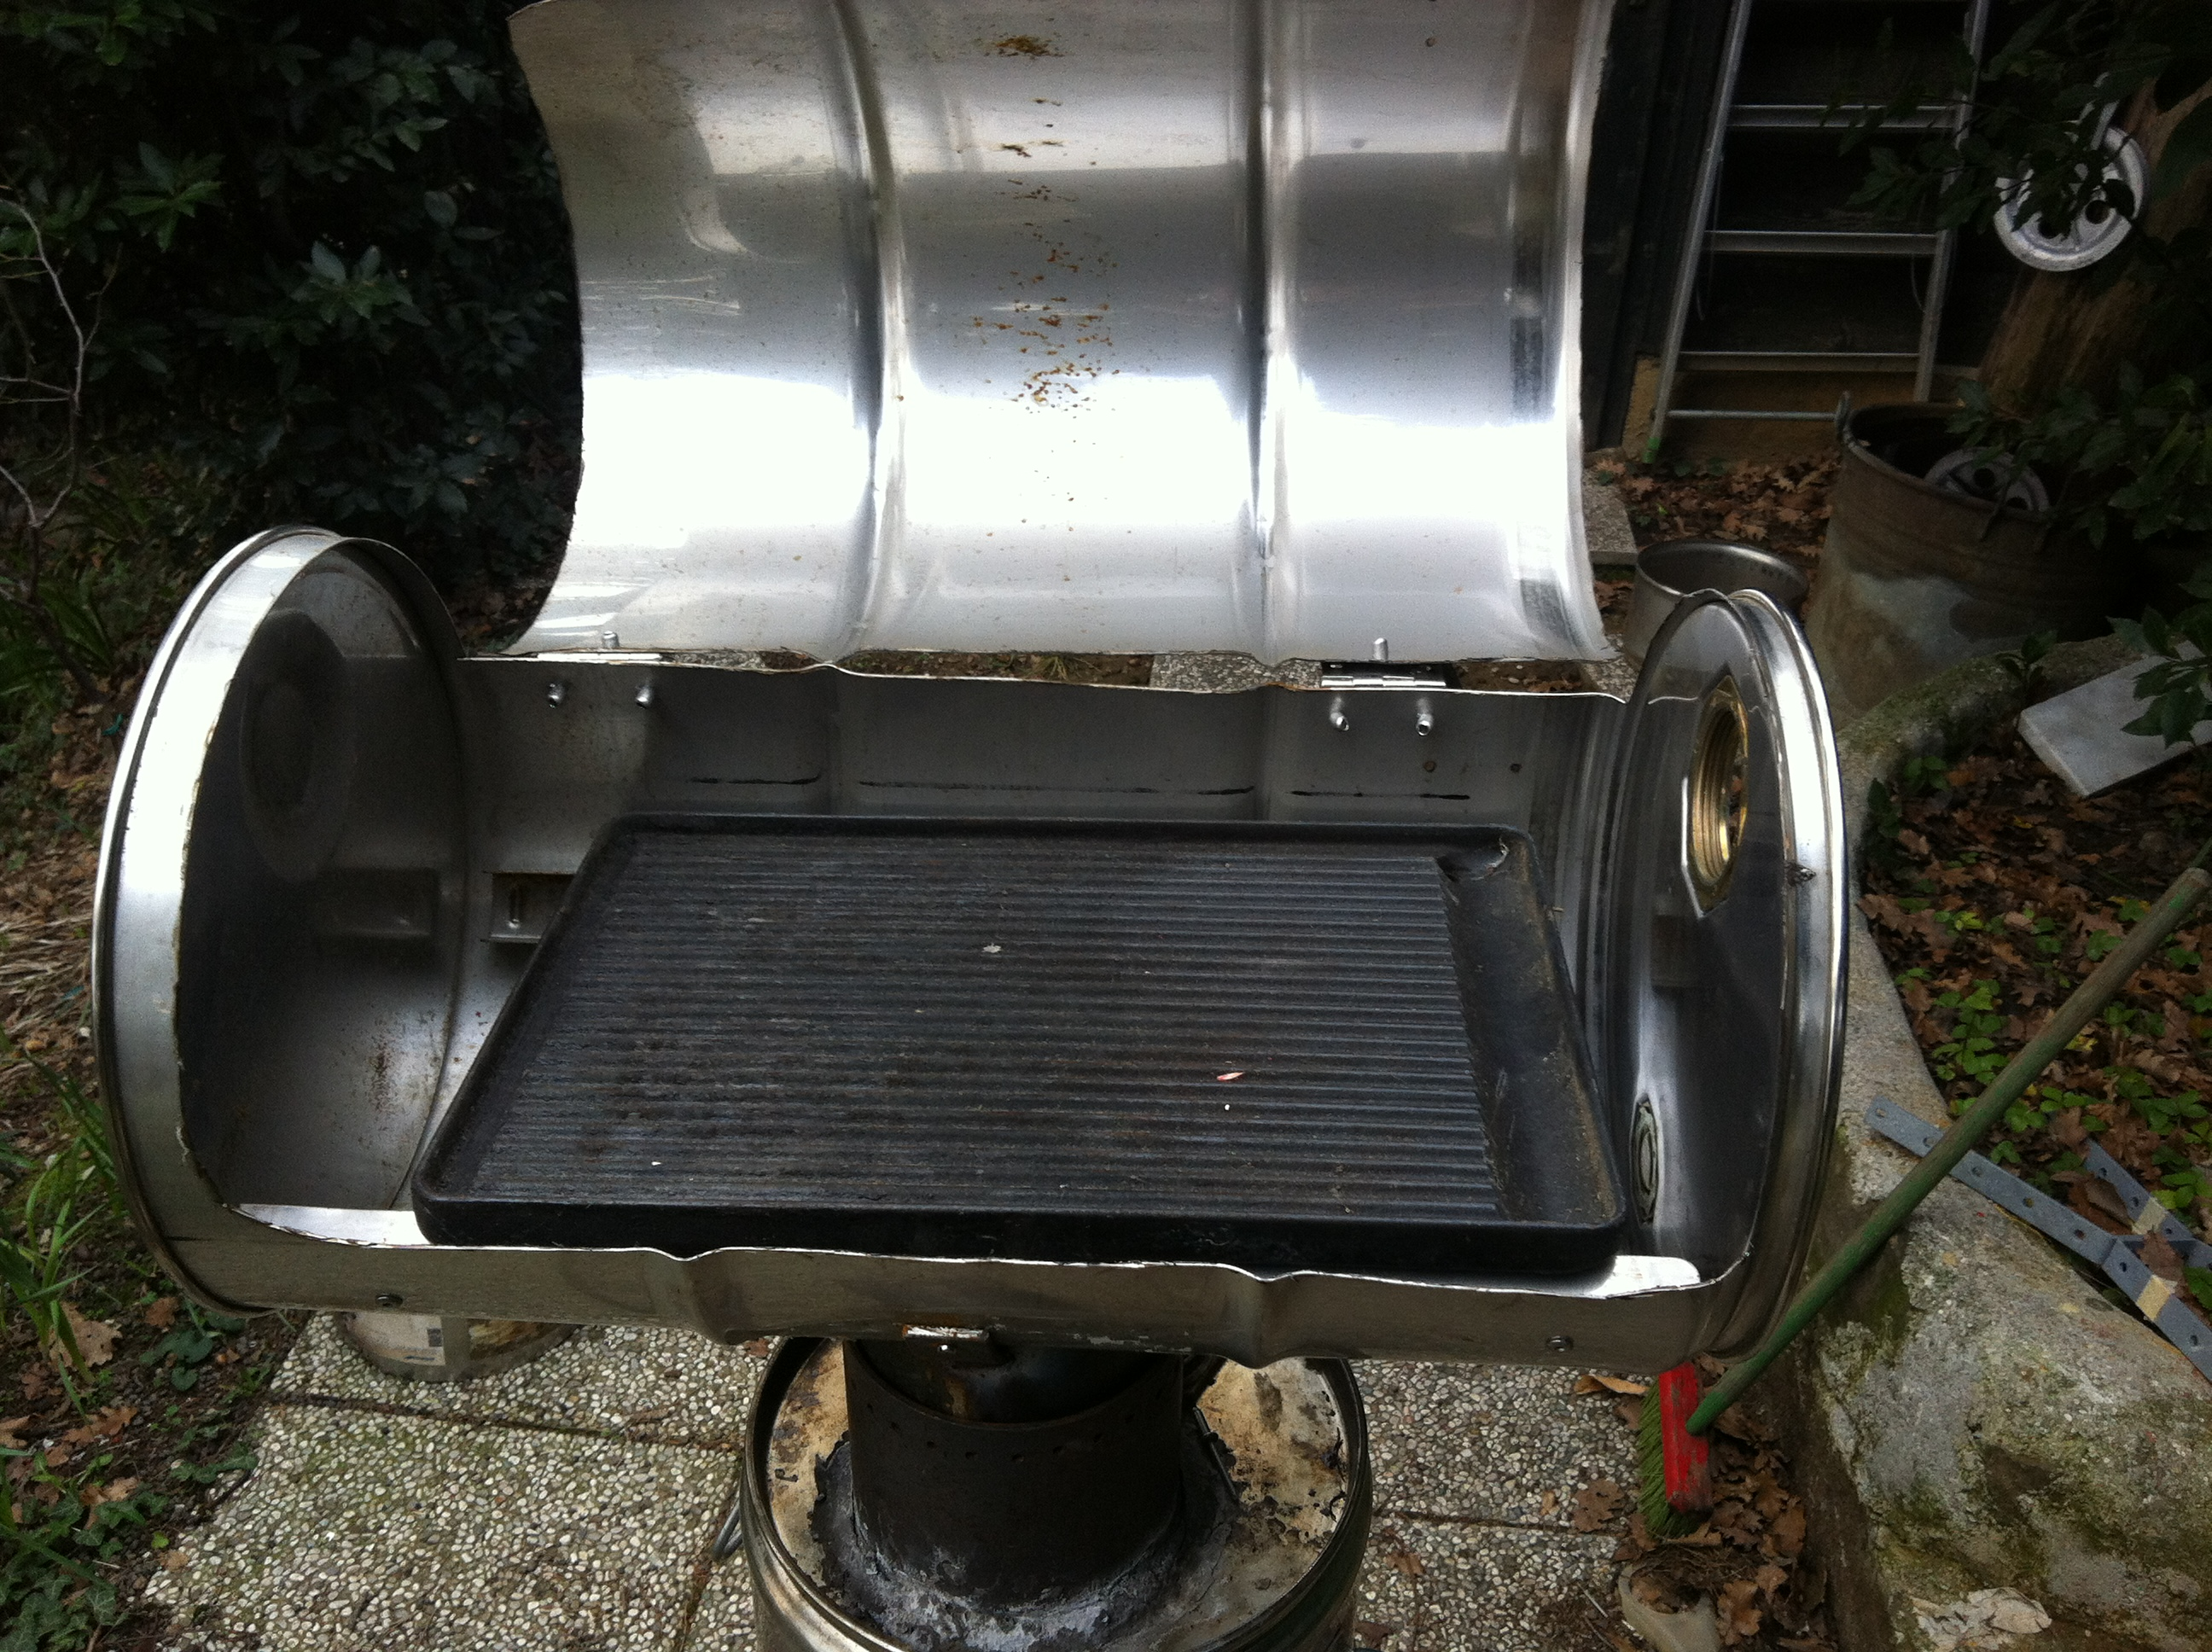 Picture of Rocket Stove and BBQ